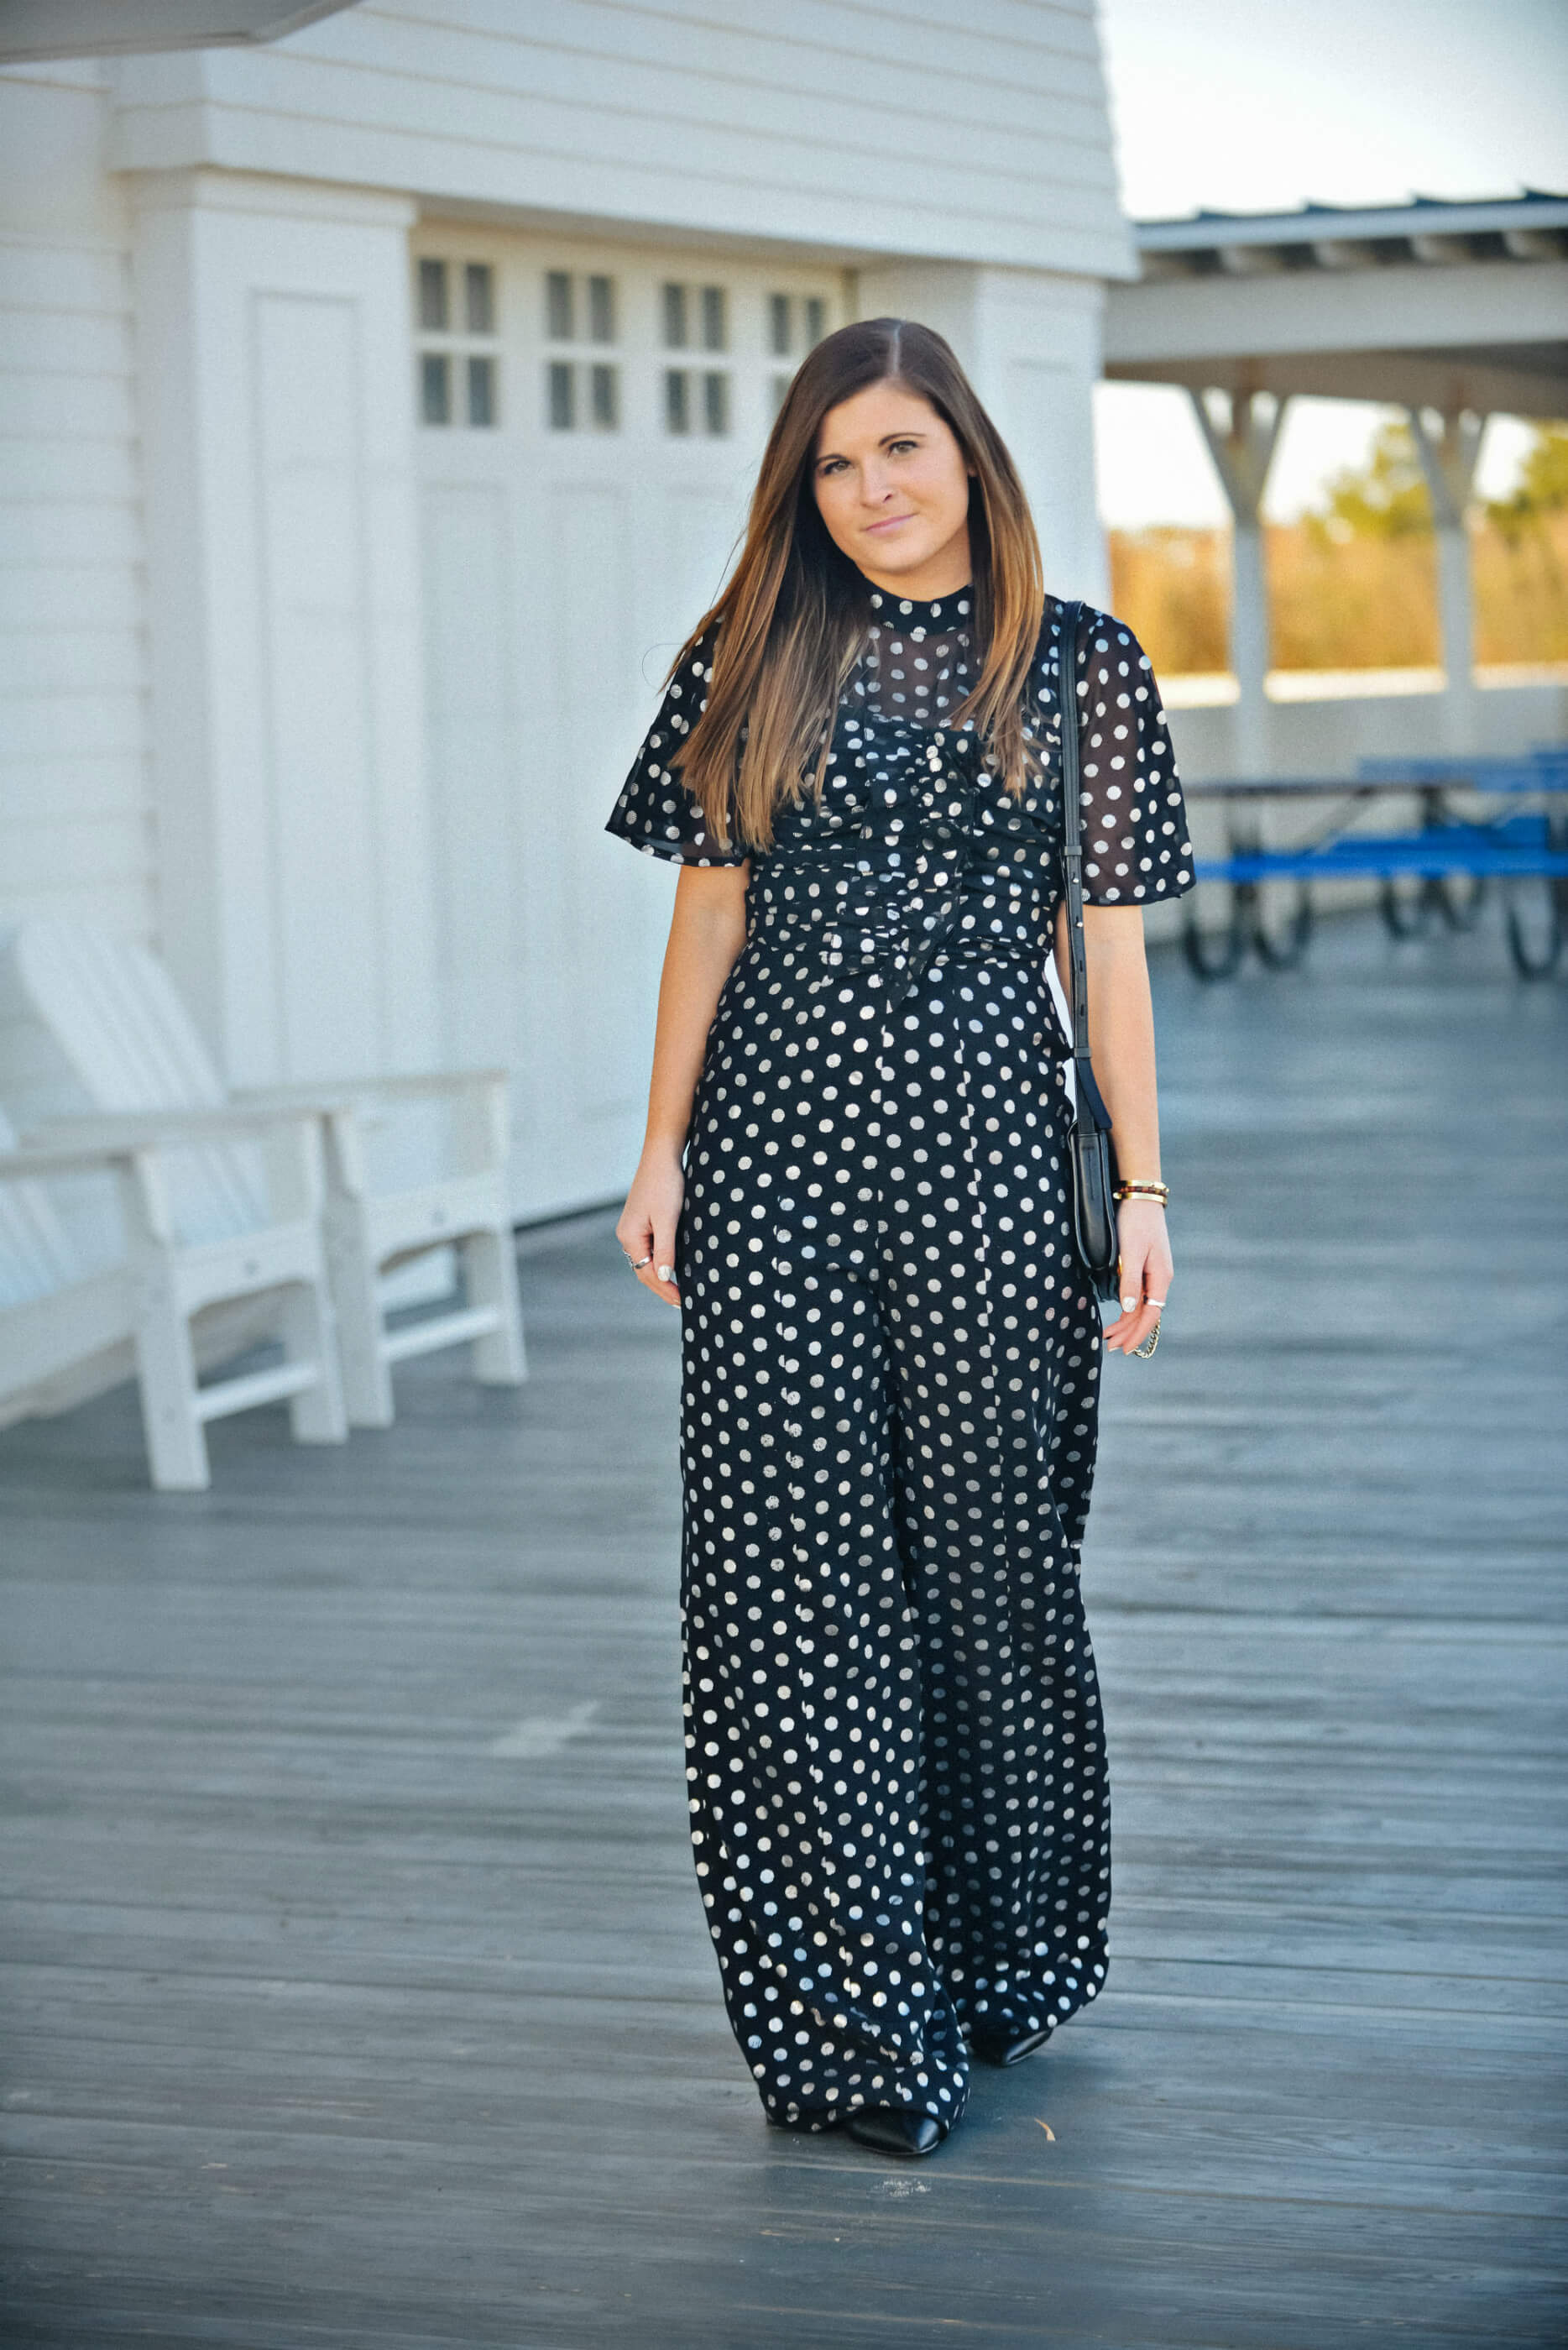 ASOS Metallic Dot Jumpsuit, Polka-Dot Jumpsuit, New Year's Eve Outfit Idea, Tilden of To Be Bright